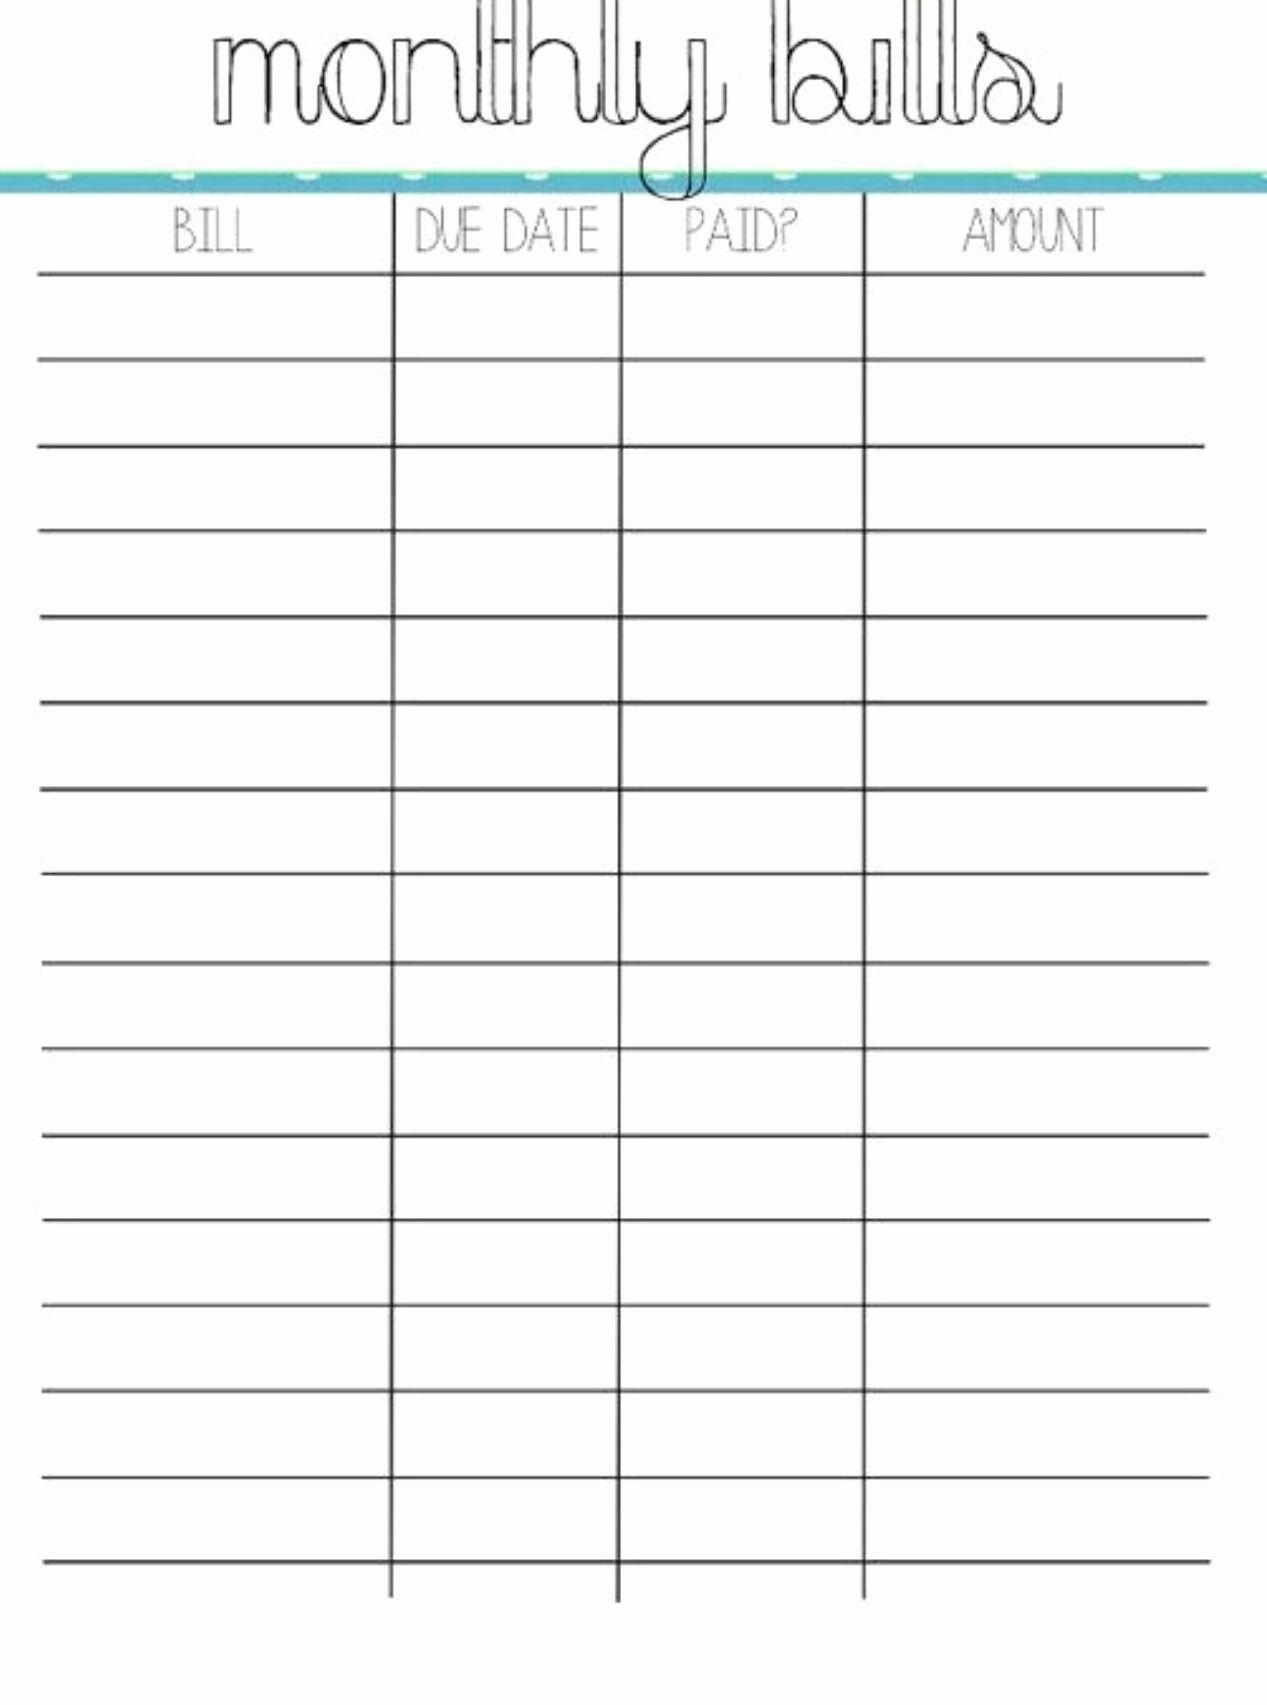 Budget Worksheet In 2020 | Monthly Budget Template  Bill Pay Sheet Pdf